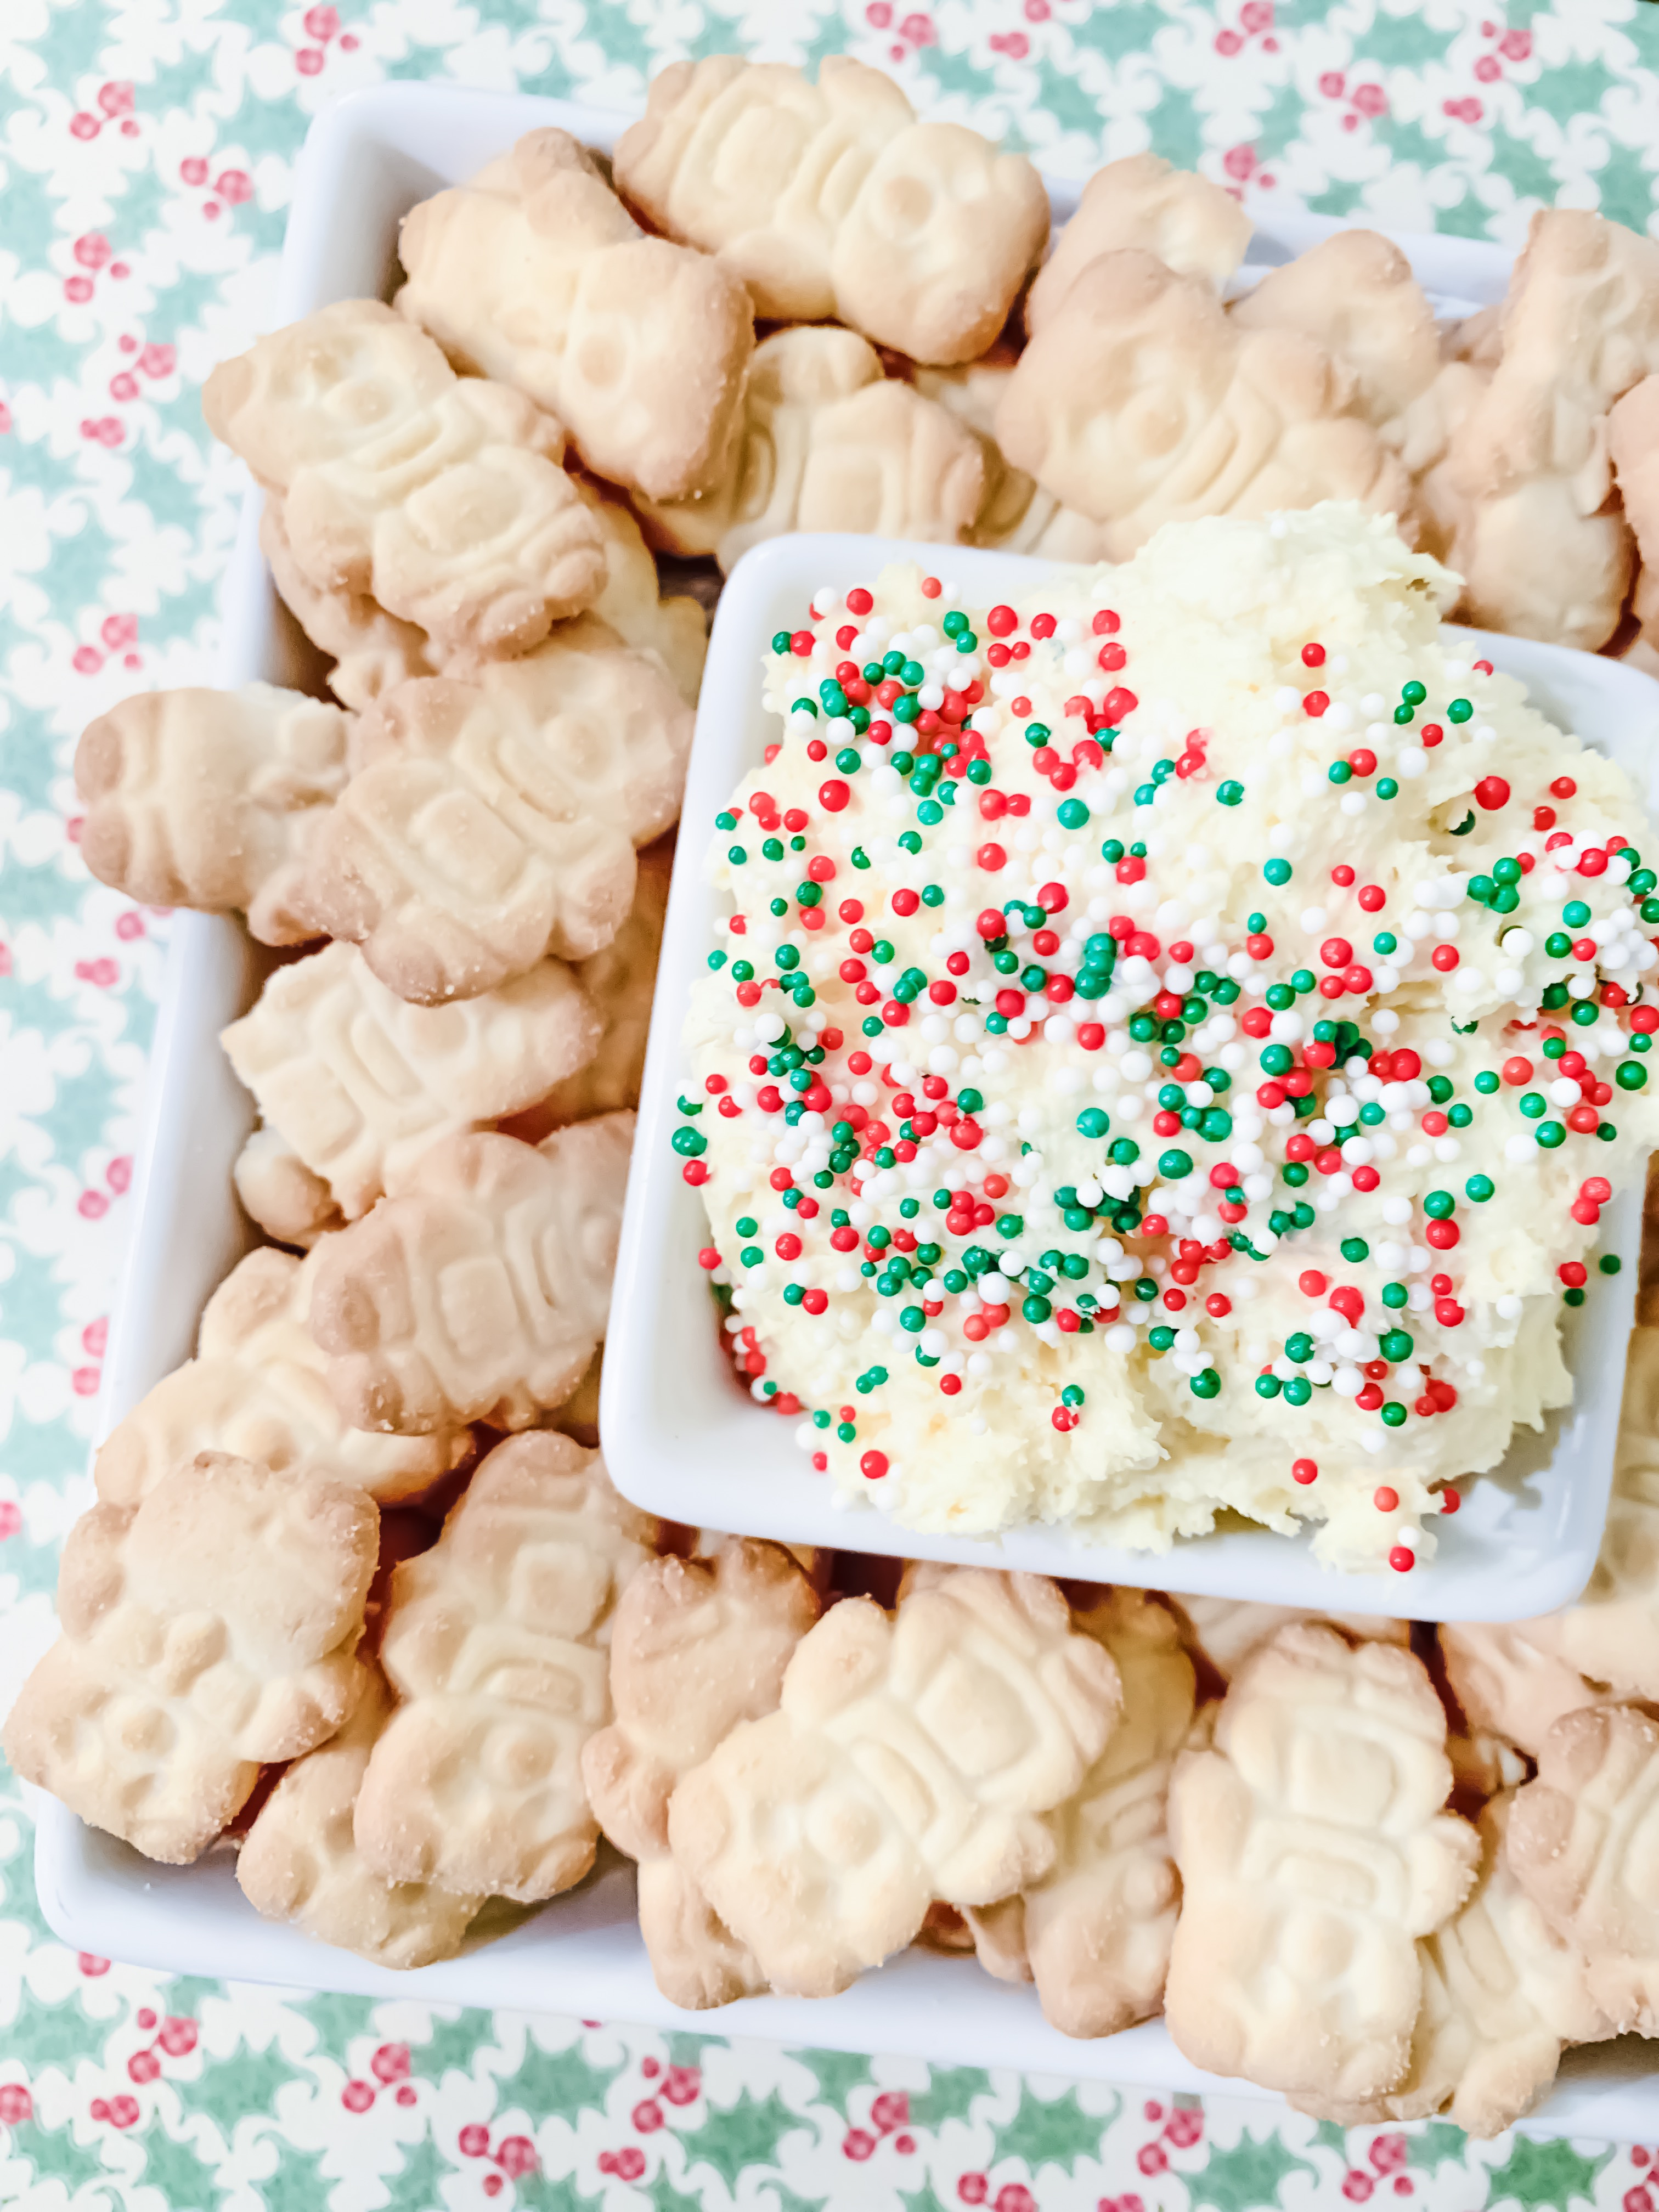 Looking for a delicious Dunkaroo Dip recipe? Dunkaroo Dip is a great sweet dip for parties and get togethers. This version is made as a Christmas treat but it is easily changed to a fun anytime dip by changing the sprinkles.